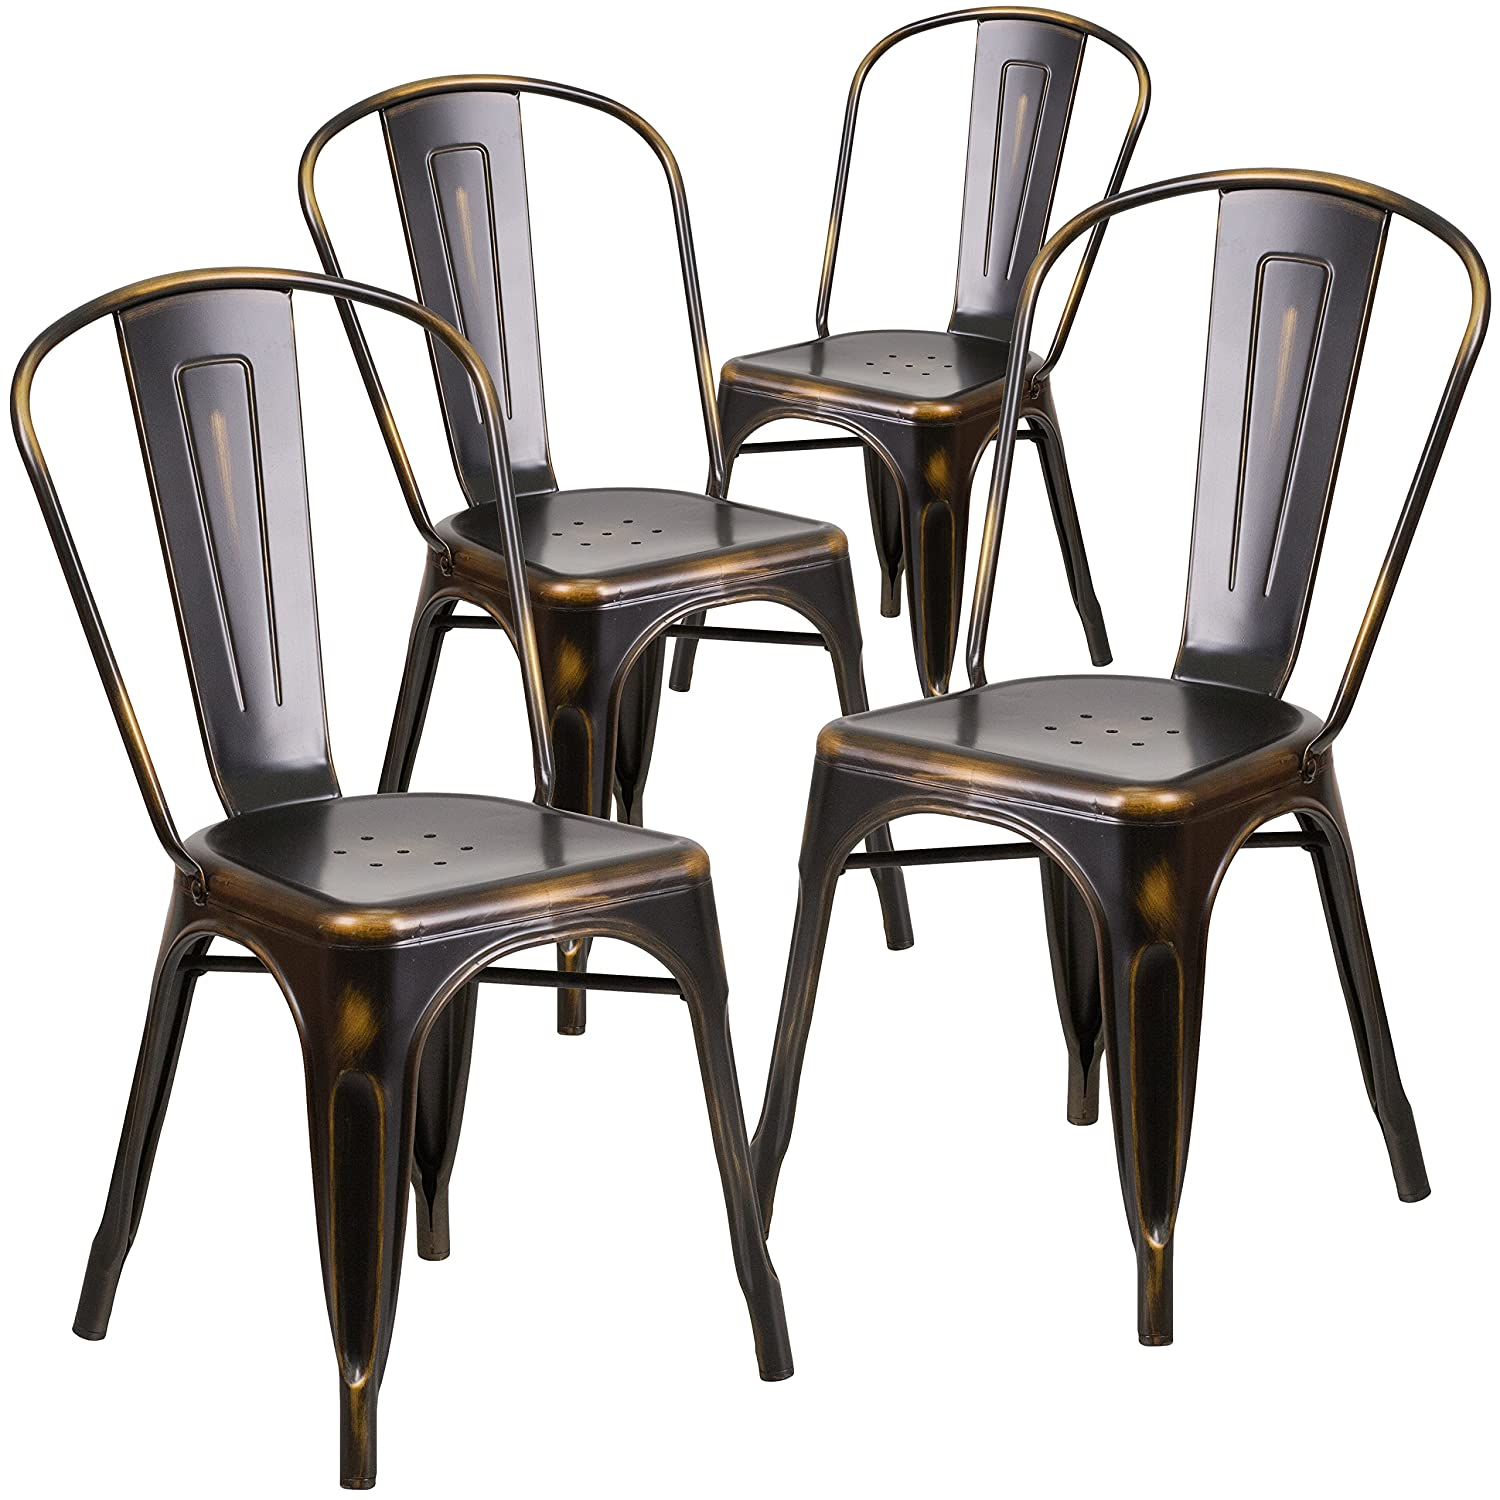 Metal outdoor stacking chairs - Amazon Com Flash Furniture 4 Pk Distressed Copper Metal Indoor Outdoor Stackable Chair Chairs